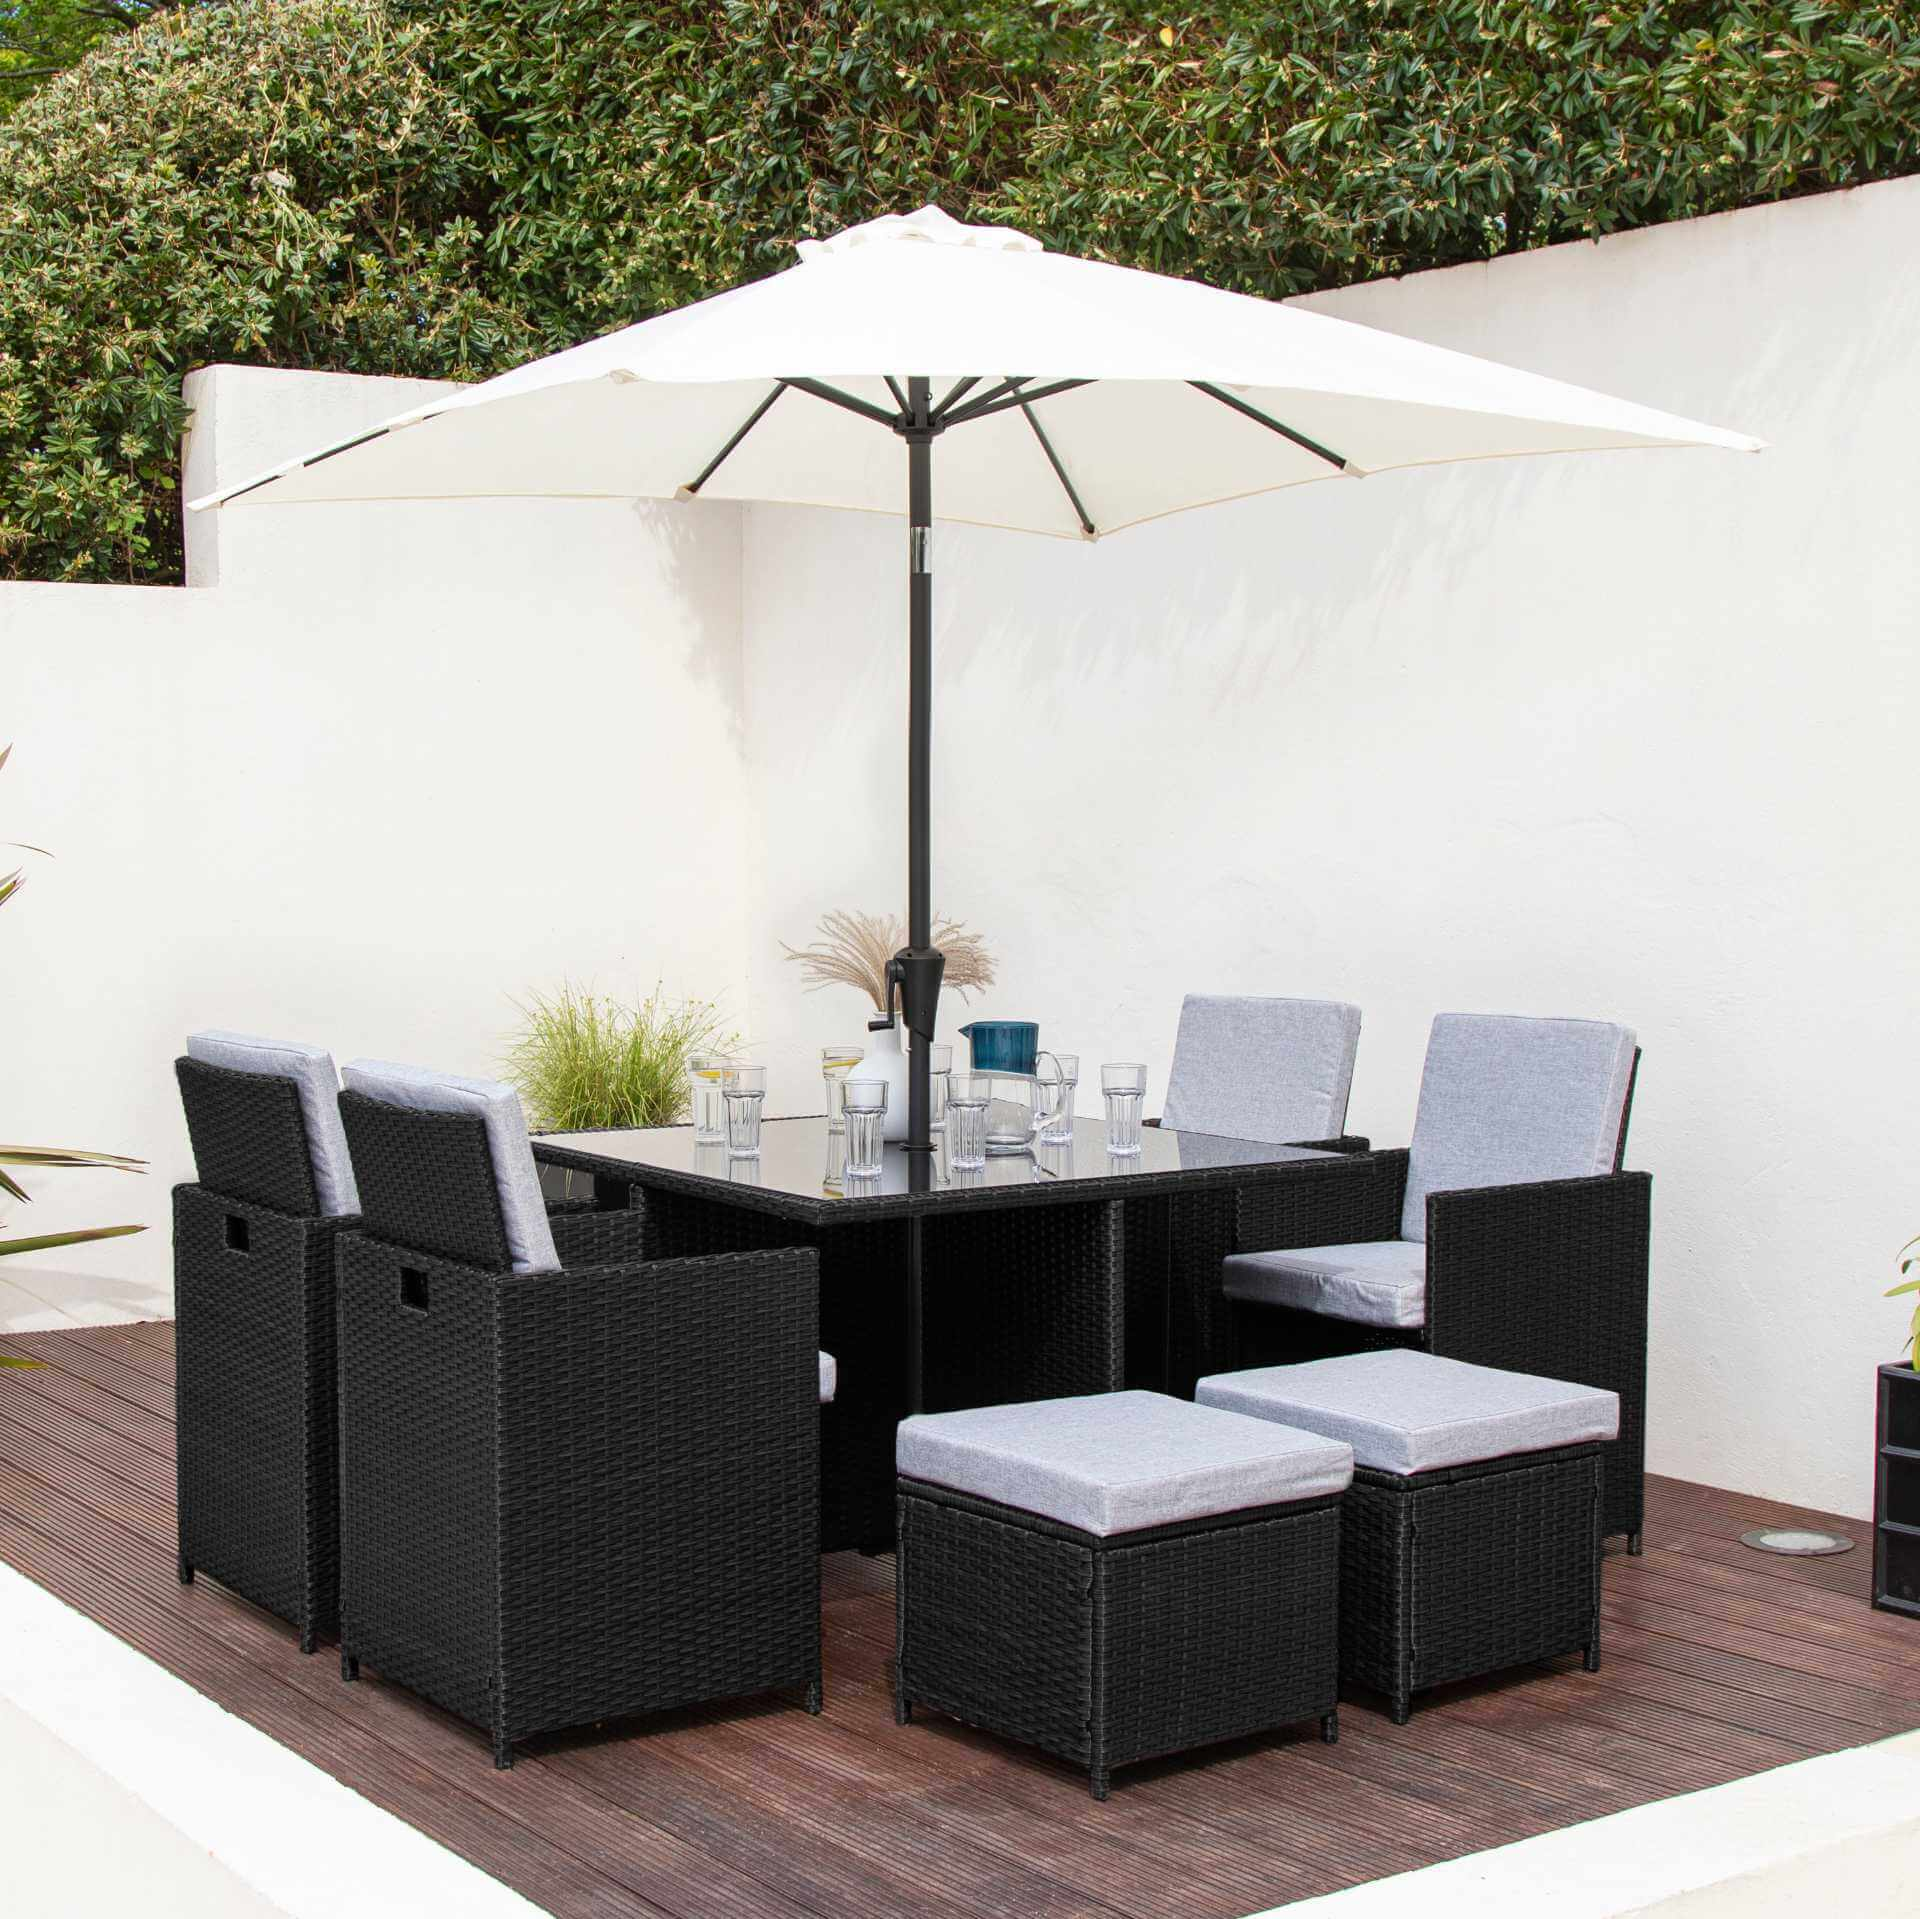 8 Seater Rattan Cube Outdoor Dining Set with Parasol - Black Weave